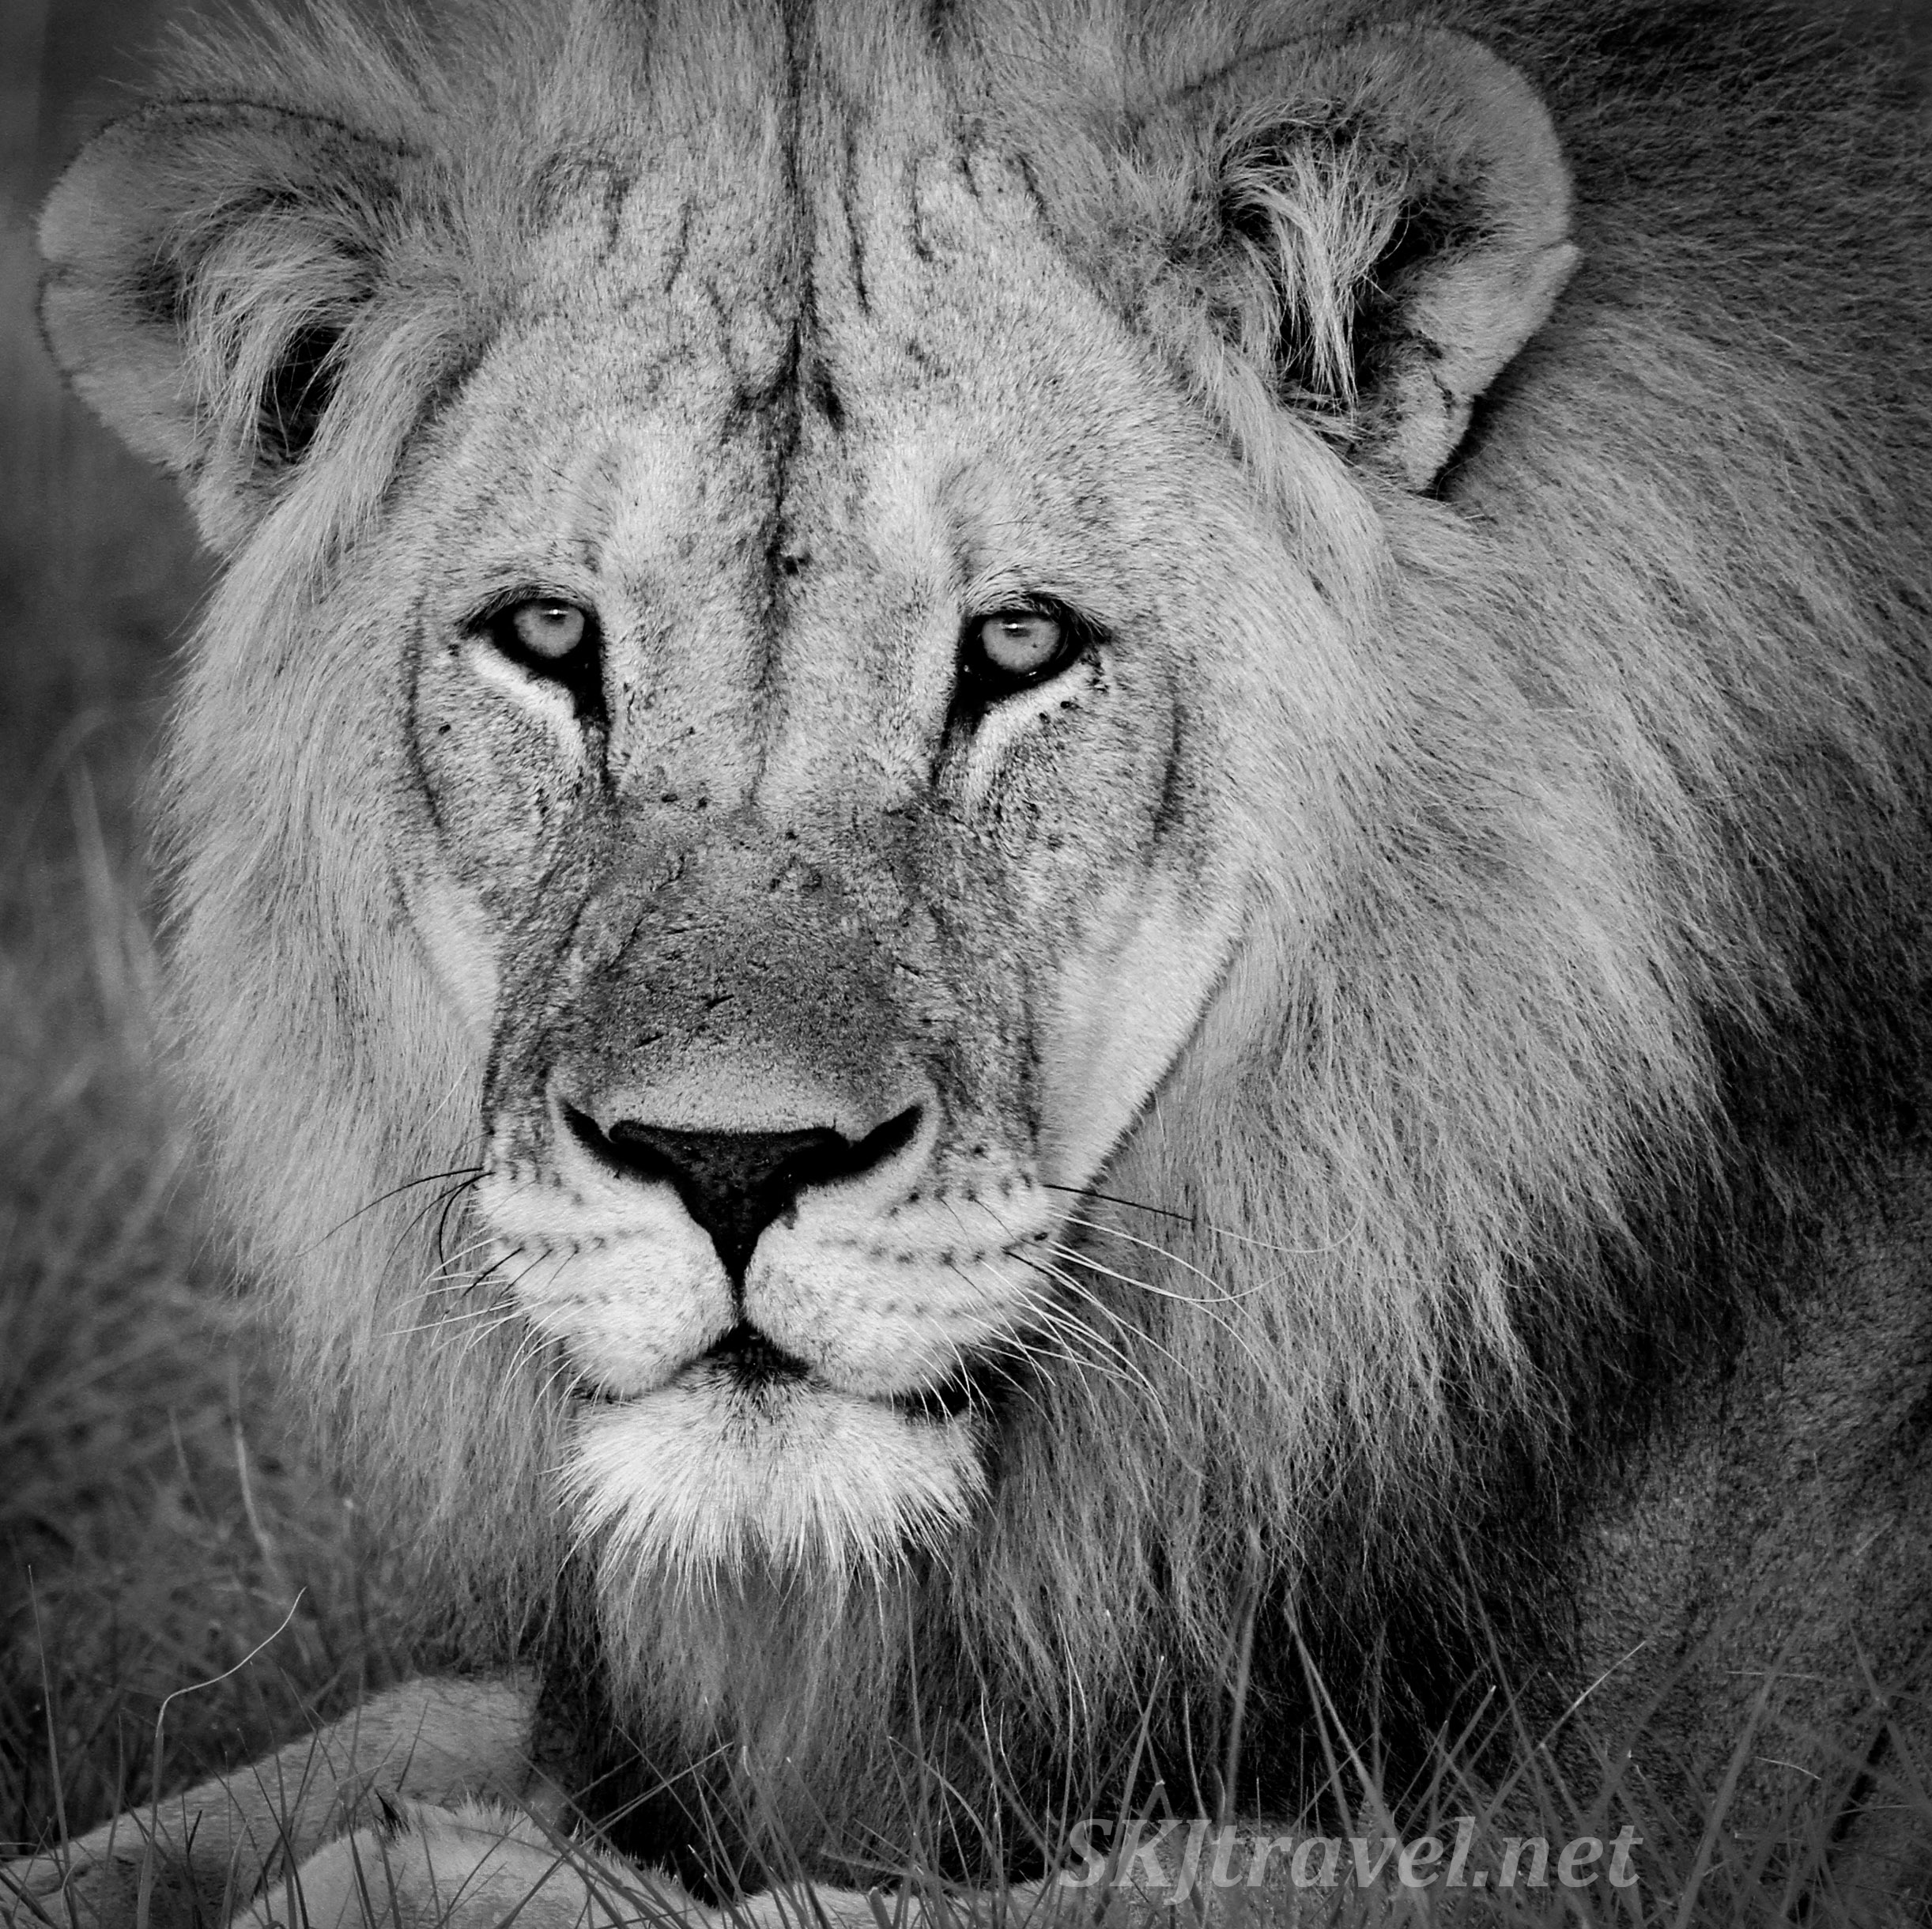 Adult male lion lying in the grass, black and white photography. Etosha National Park, Namibia.